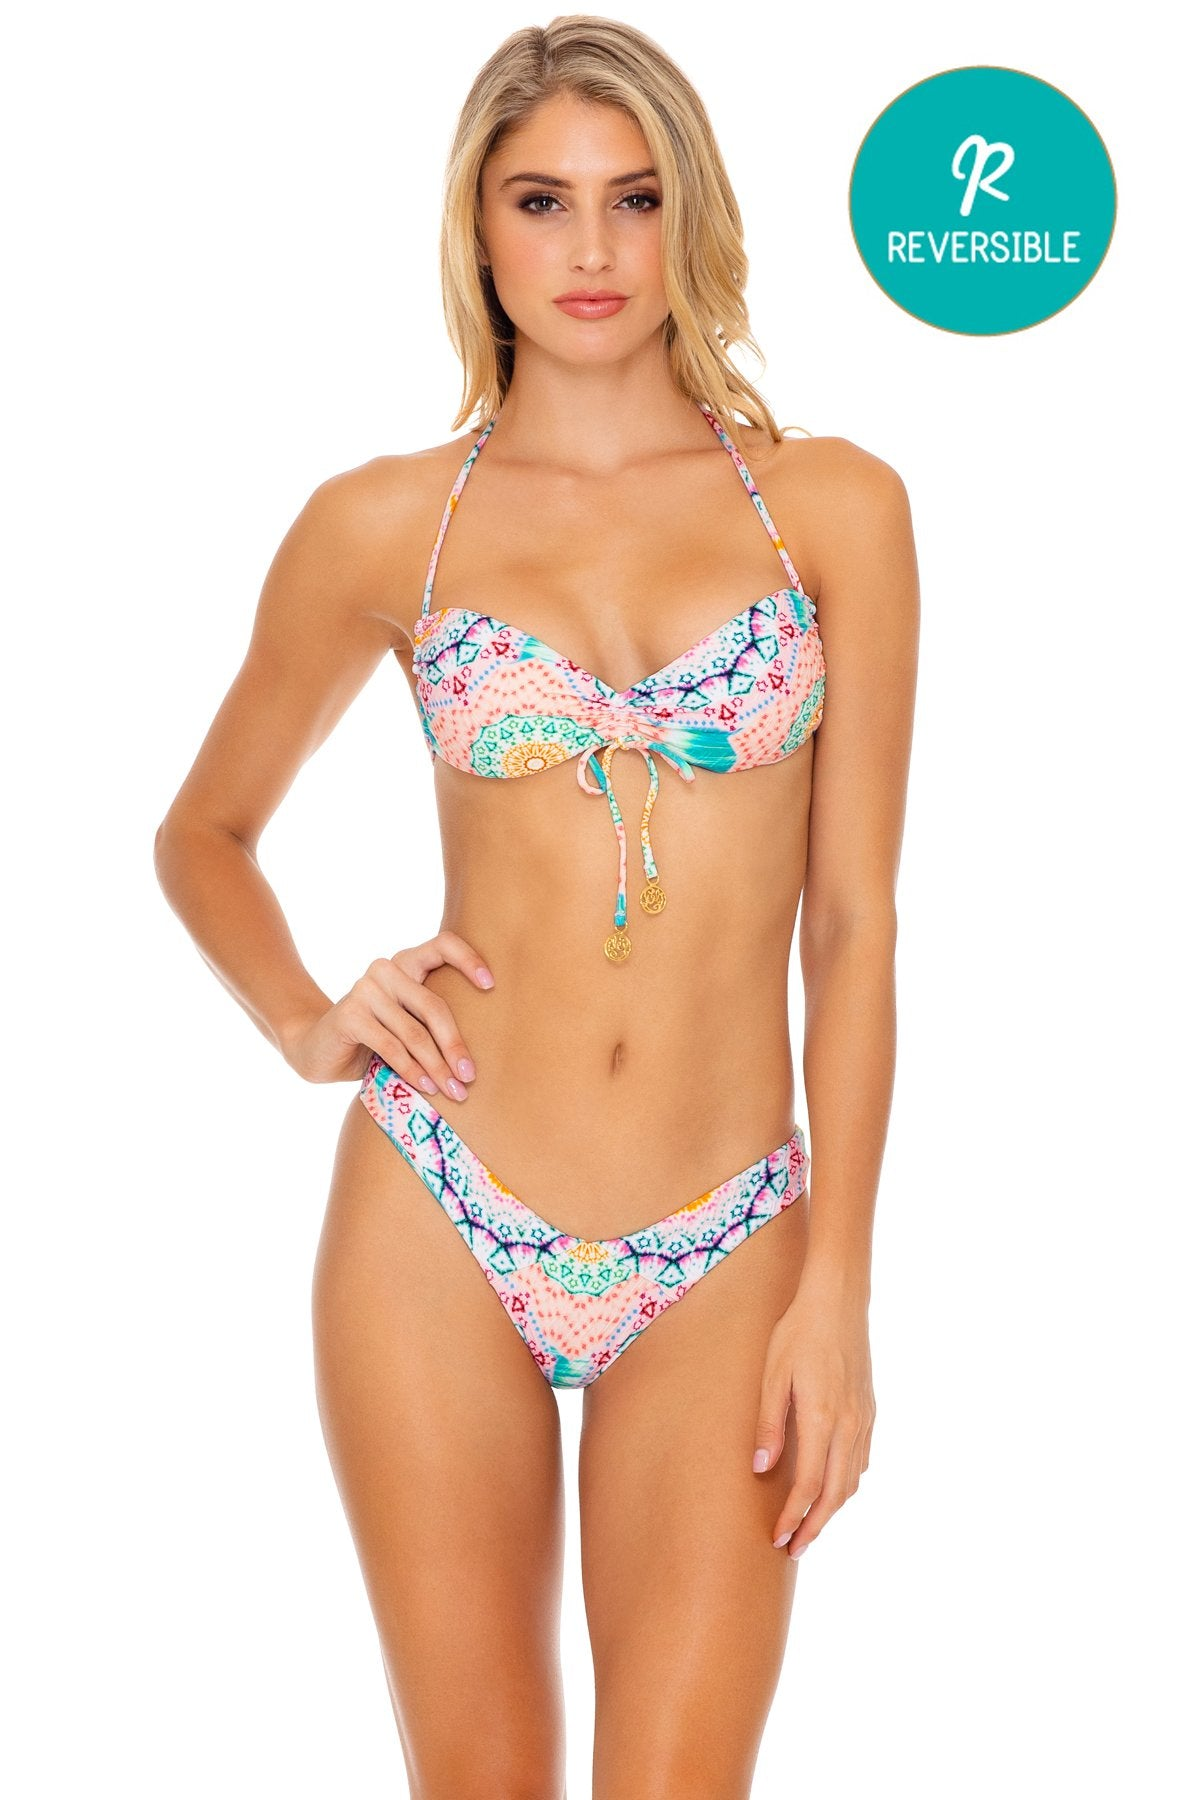 CARIBBEAN KISSES - Bandeau Top & Tab Side High Leg Bottom • Multicolor